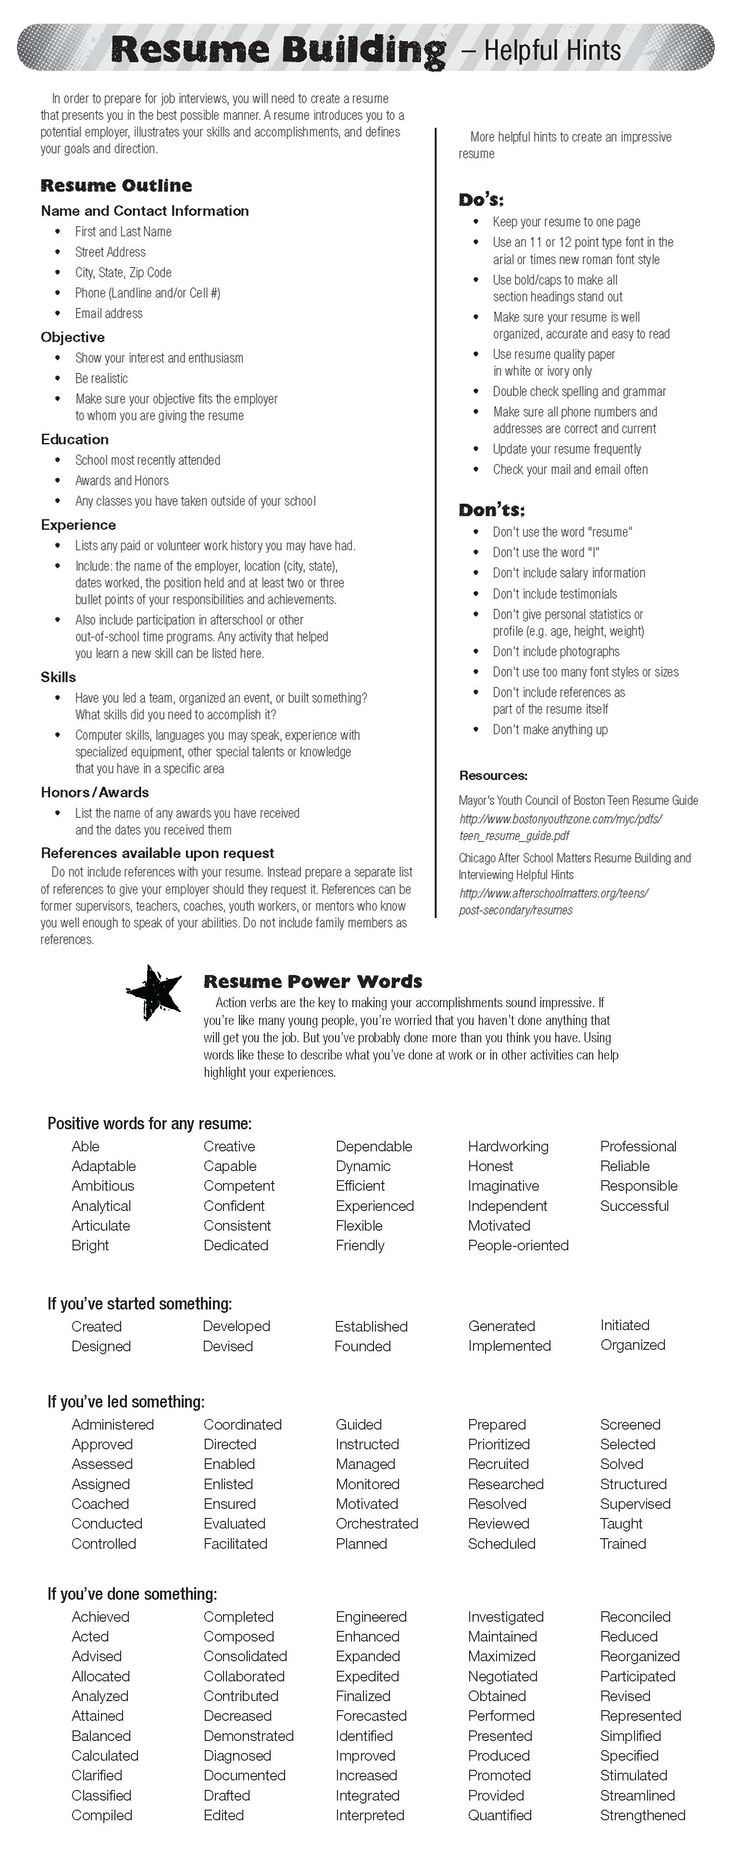 Opposenewapstandardsus  Mesmerizing  Ideas About Resume On Pinterest  Cv Format Resume  With Lovable Check Out Todays Resume Building Tips Resume Resumepowerwords With Amusing How Do I Make A Resume Also Restaurant Resume In Addition Objective Statement Resume And Substitute Teacher Resume As Well As Best Resume Writing Service Additionally Law School Resume From Pinterestcom With Opposenewapstandardsus  Lovable  Ideas About Resume On Pinterest  Cv Format Resume  With Amusing Check Out Todays Resume Building Tips Resume Resumepowerwords And Mesmerizing How Do I Make A Resume Also Restaurant Resume In Addition Objective Statement Resume From Pinterestcom